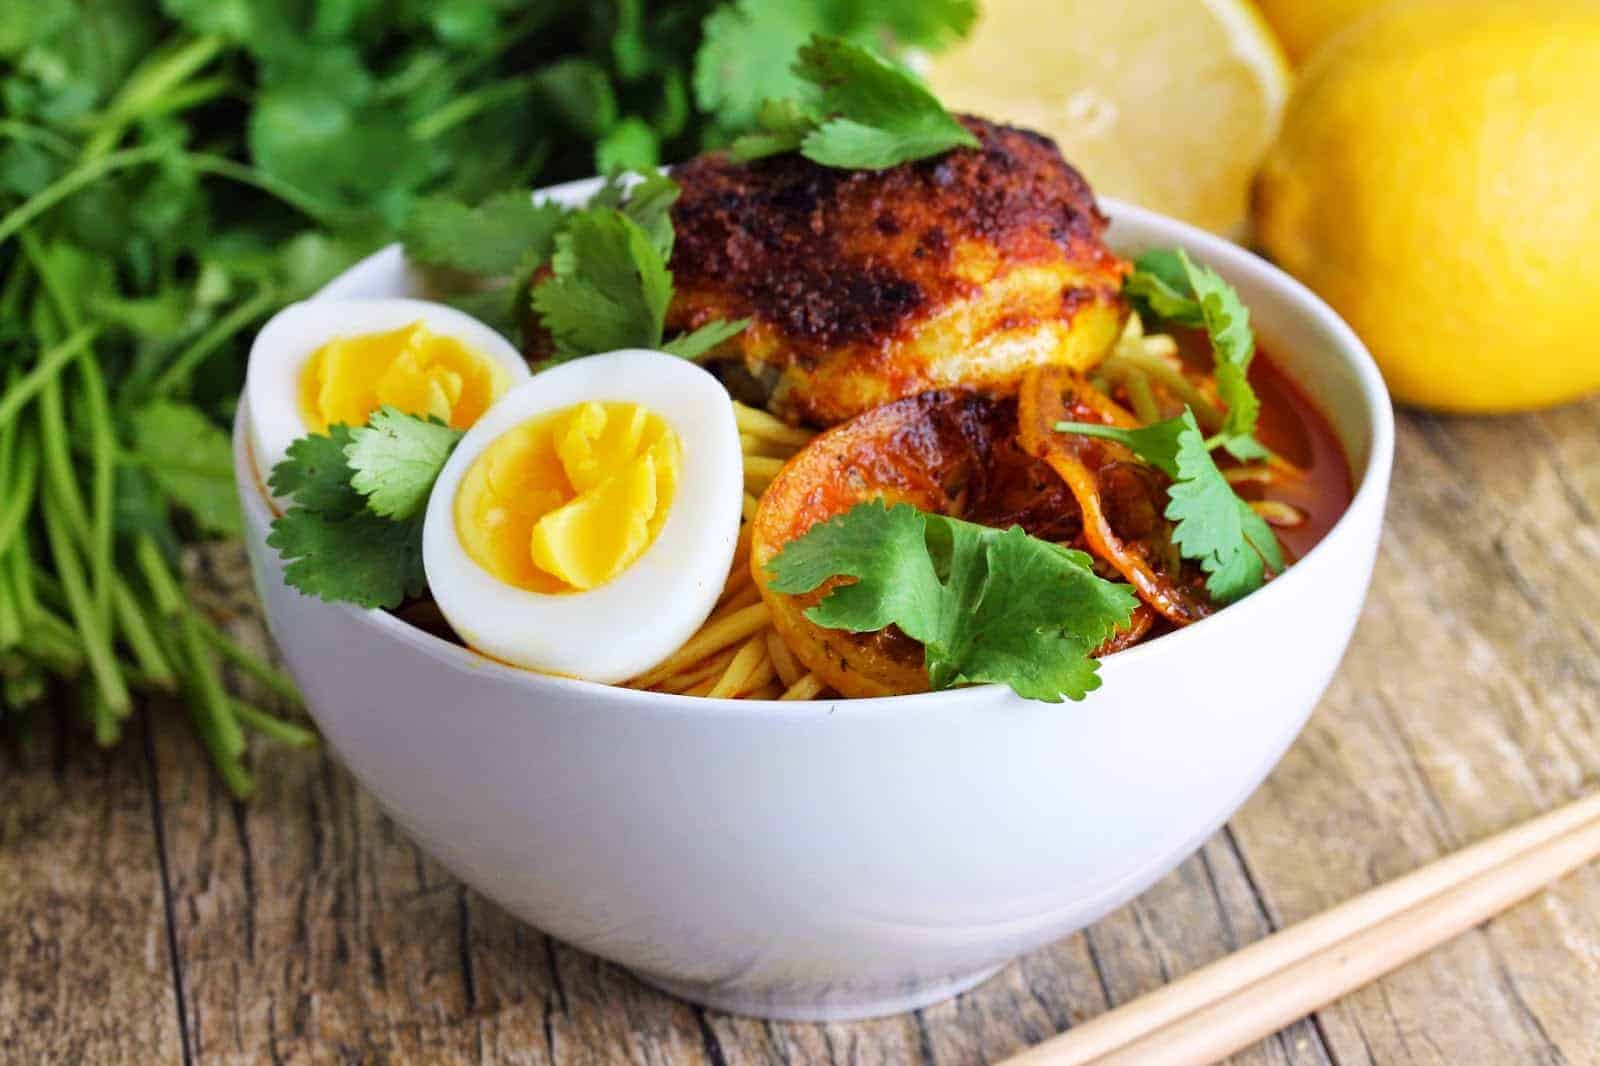 Moroccan style ramen in a white bowl topped with Moroccan chicken thighs and hard-boiled eggs.